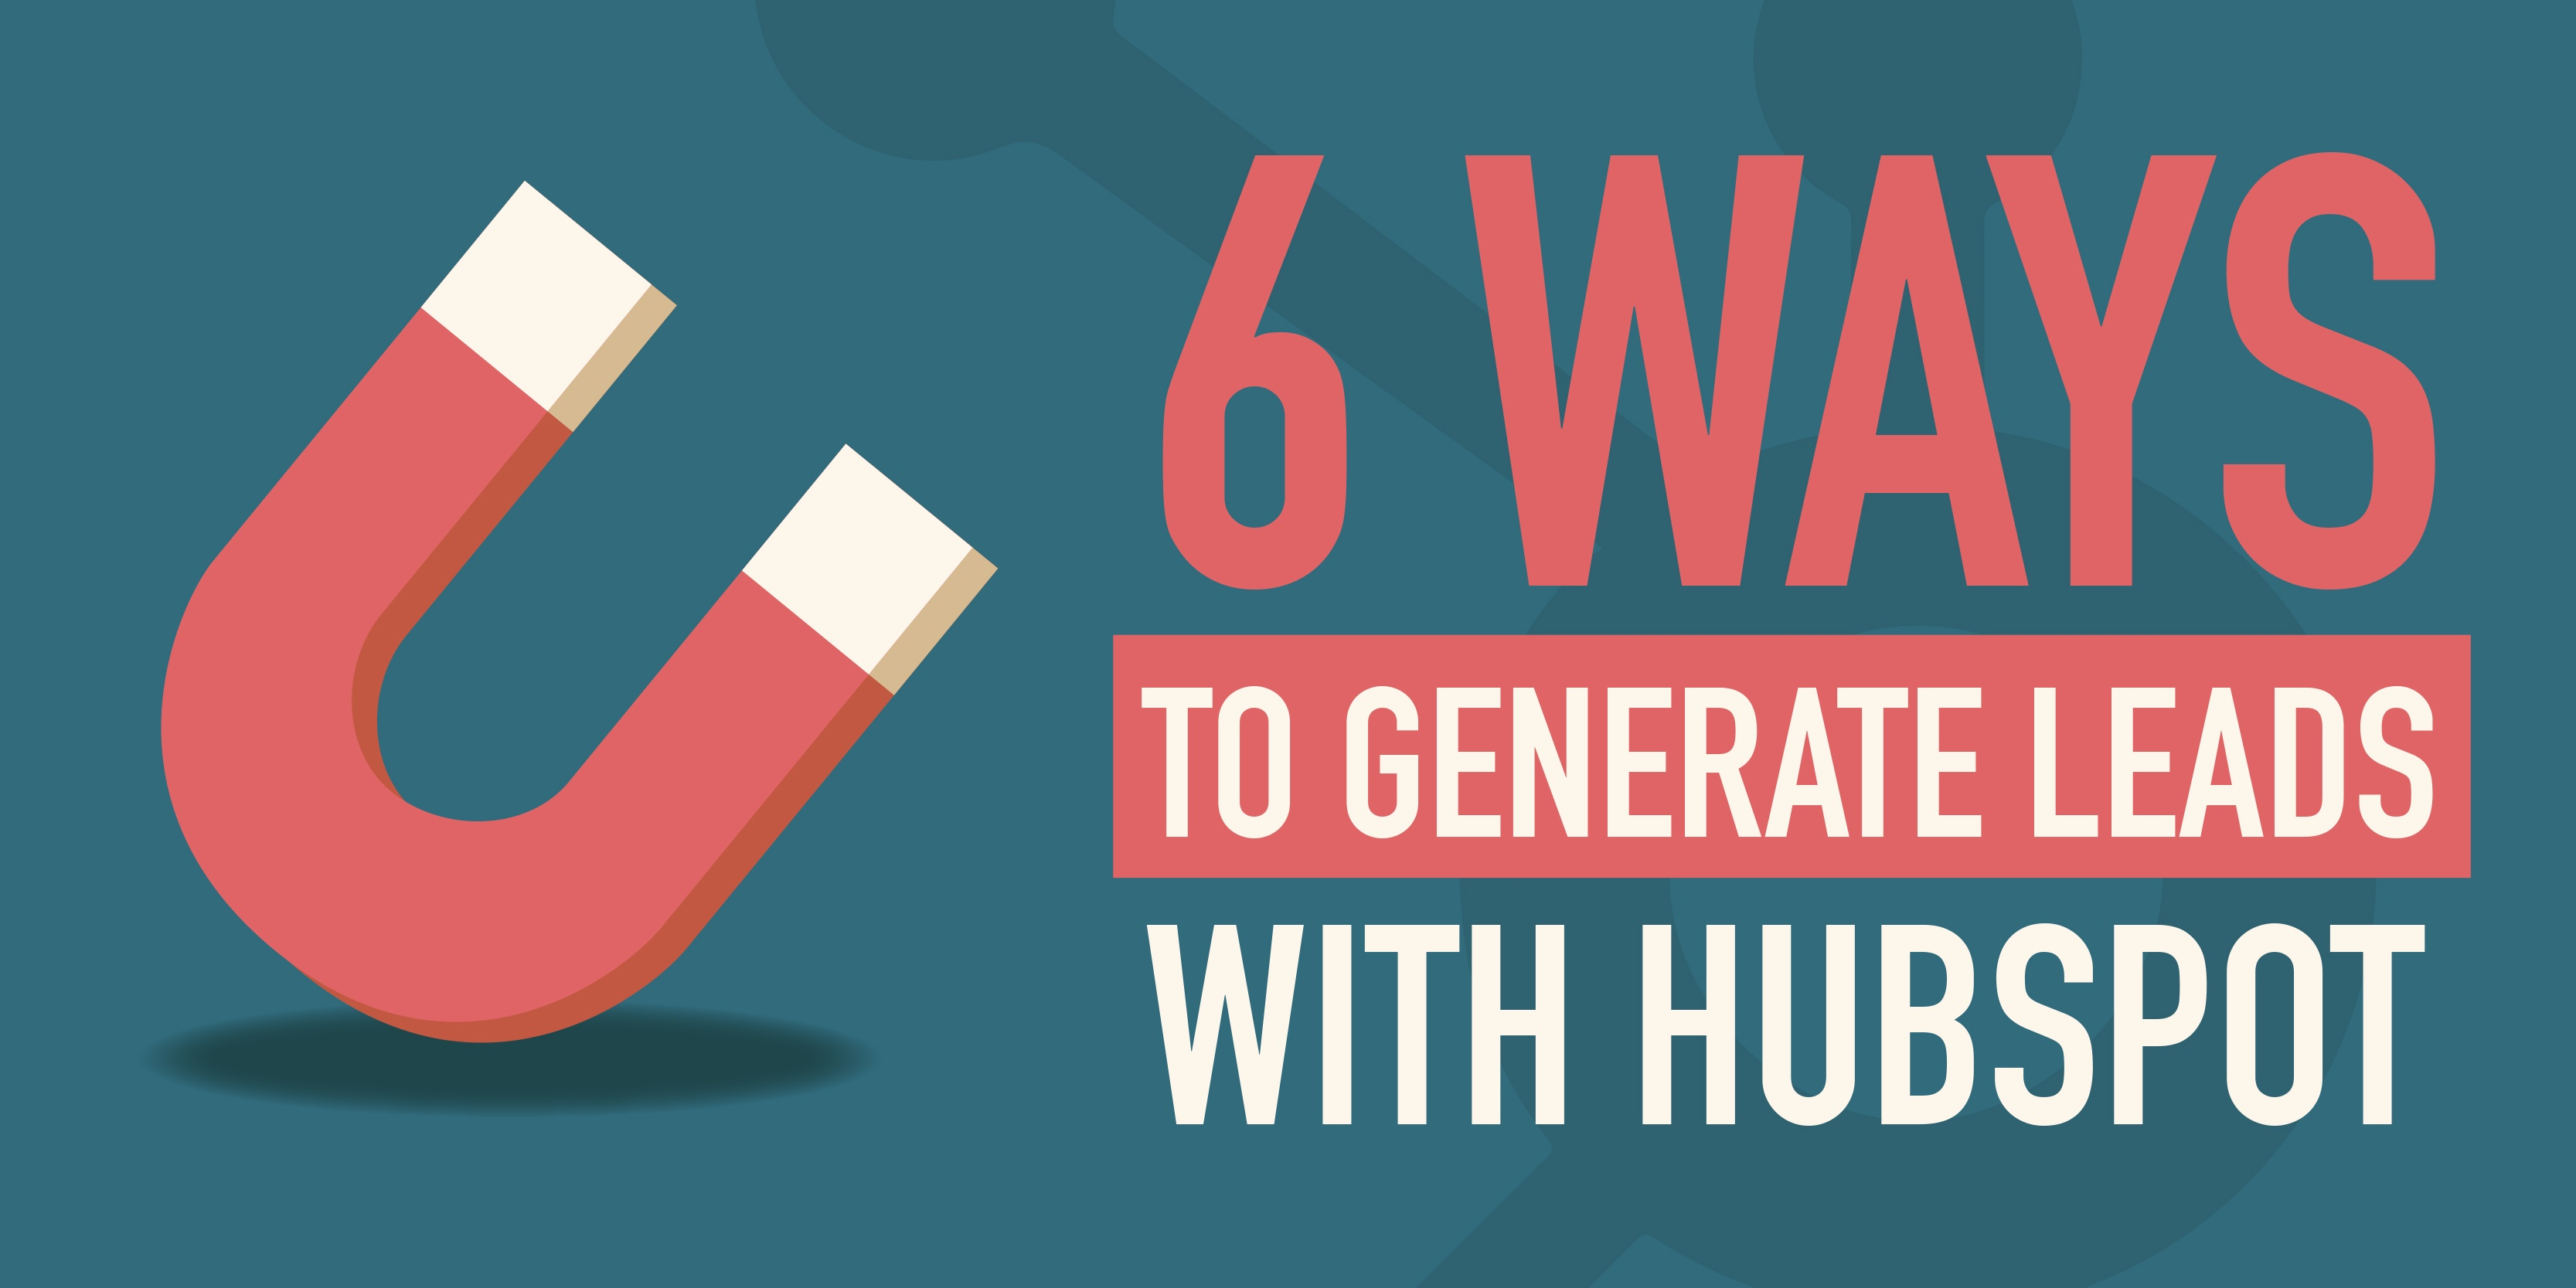 Morey-6-Ways-to-Generate-Leads-With-HubSpot.jpg